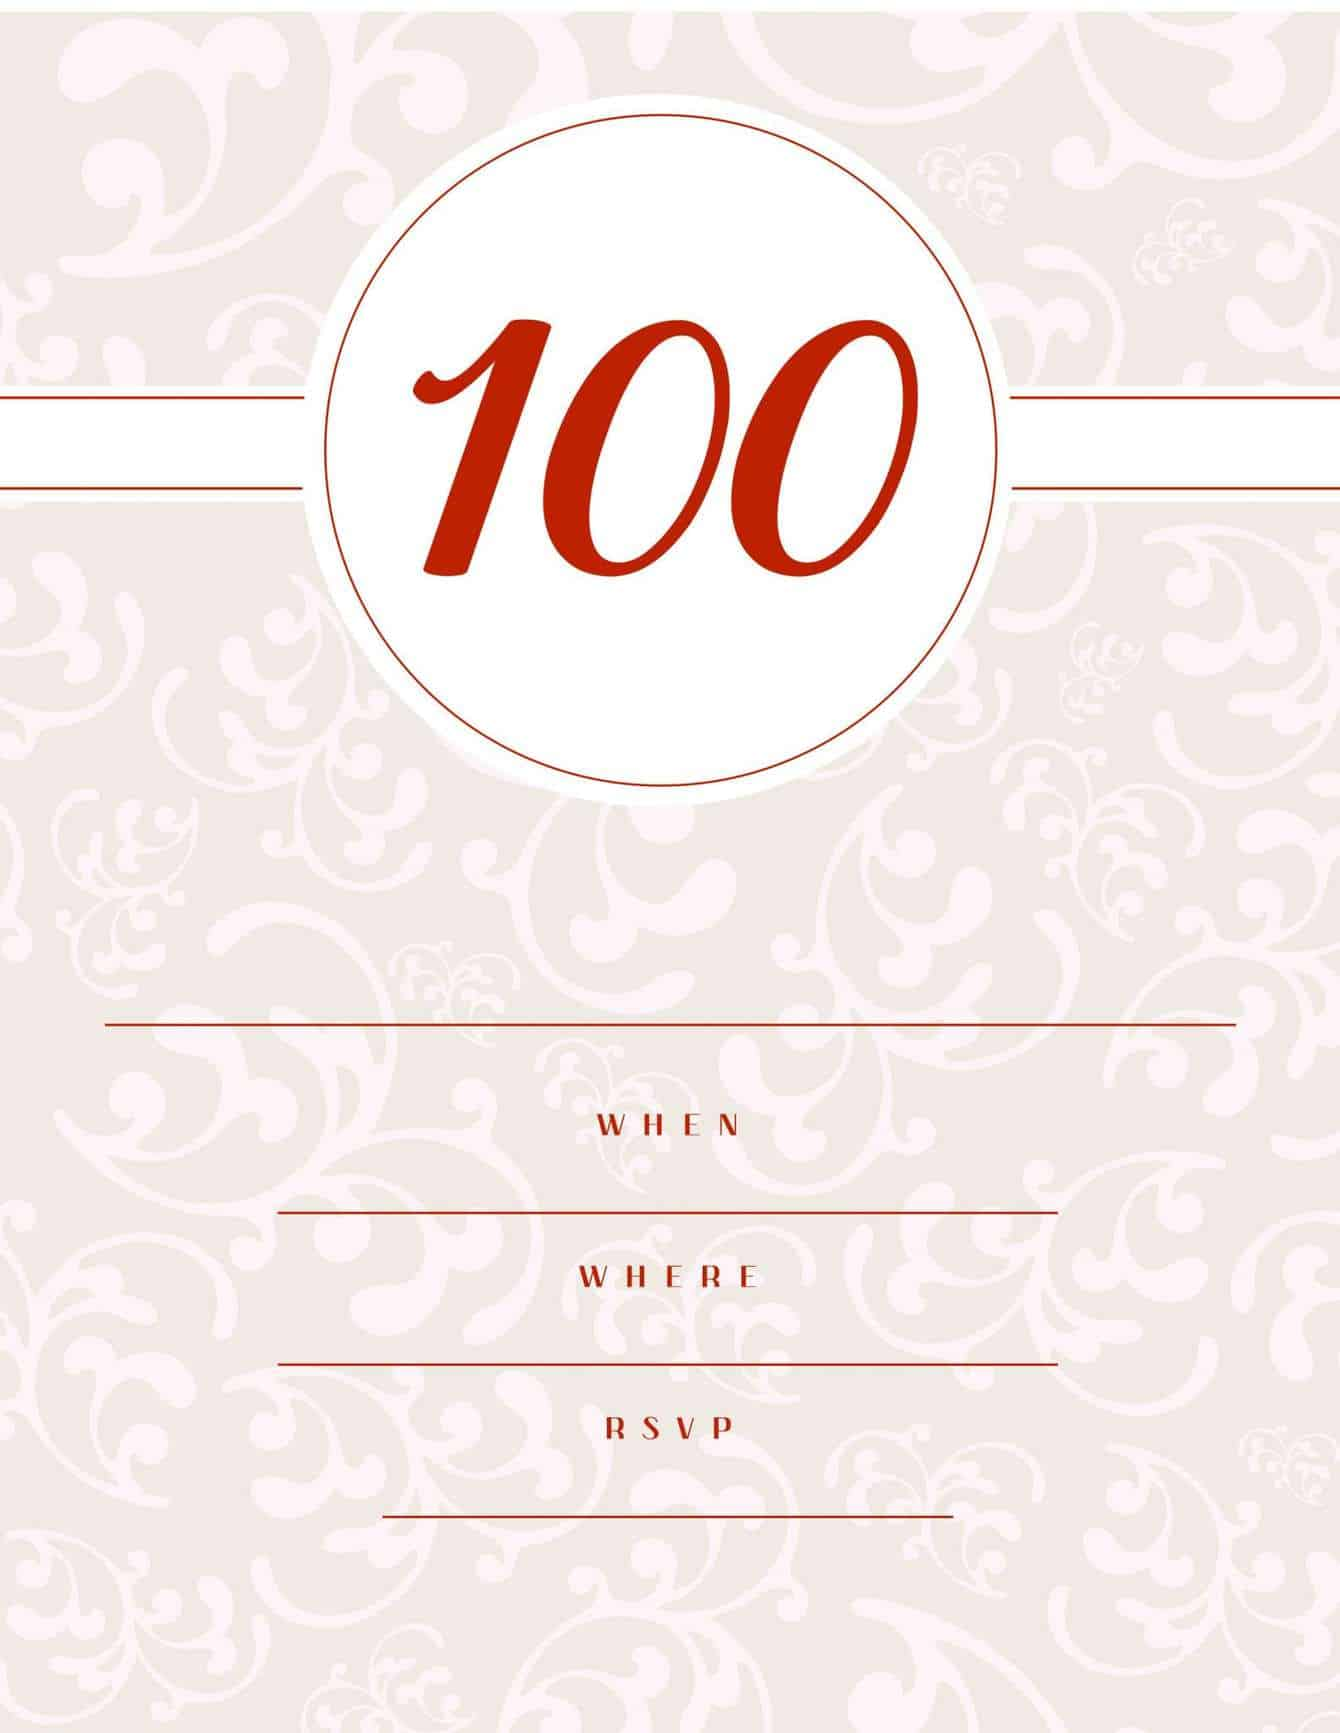 100th birthday invitation pink with floral background classic style